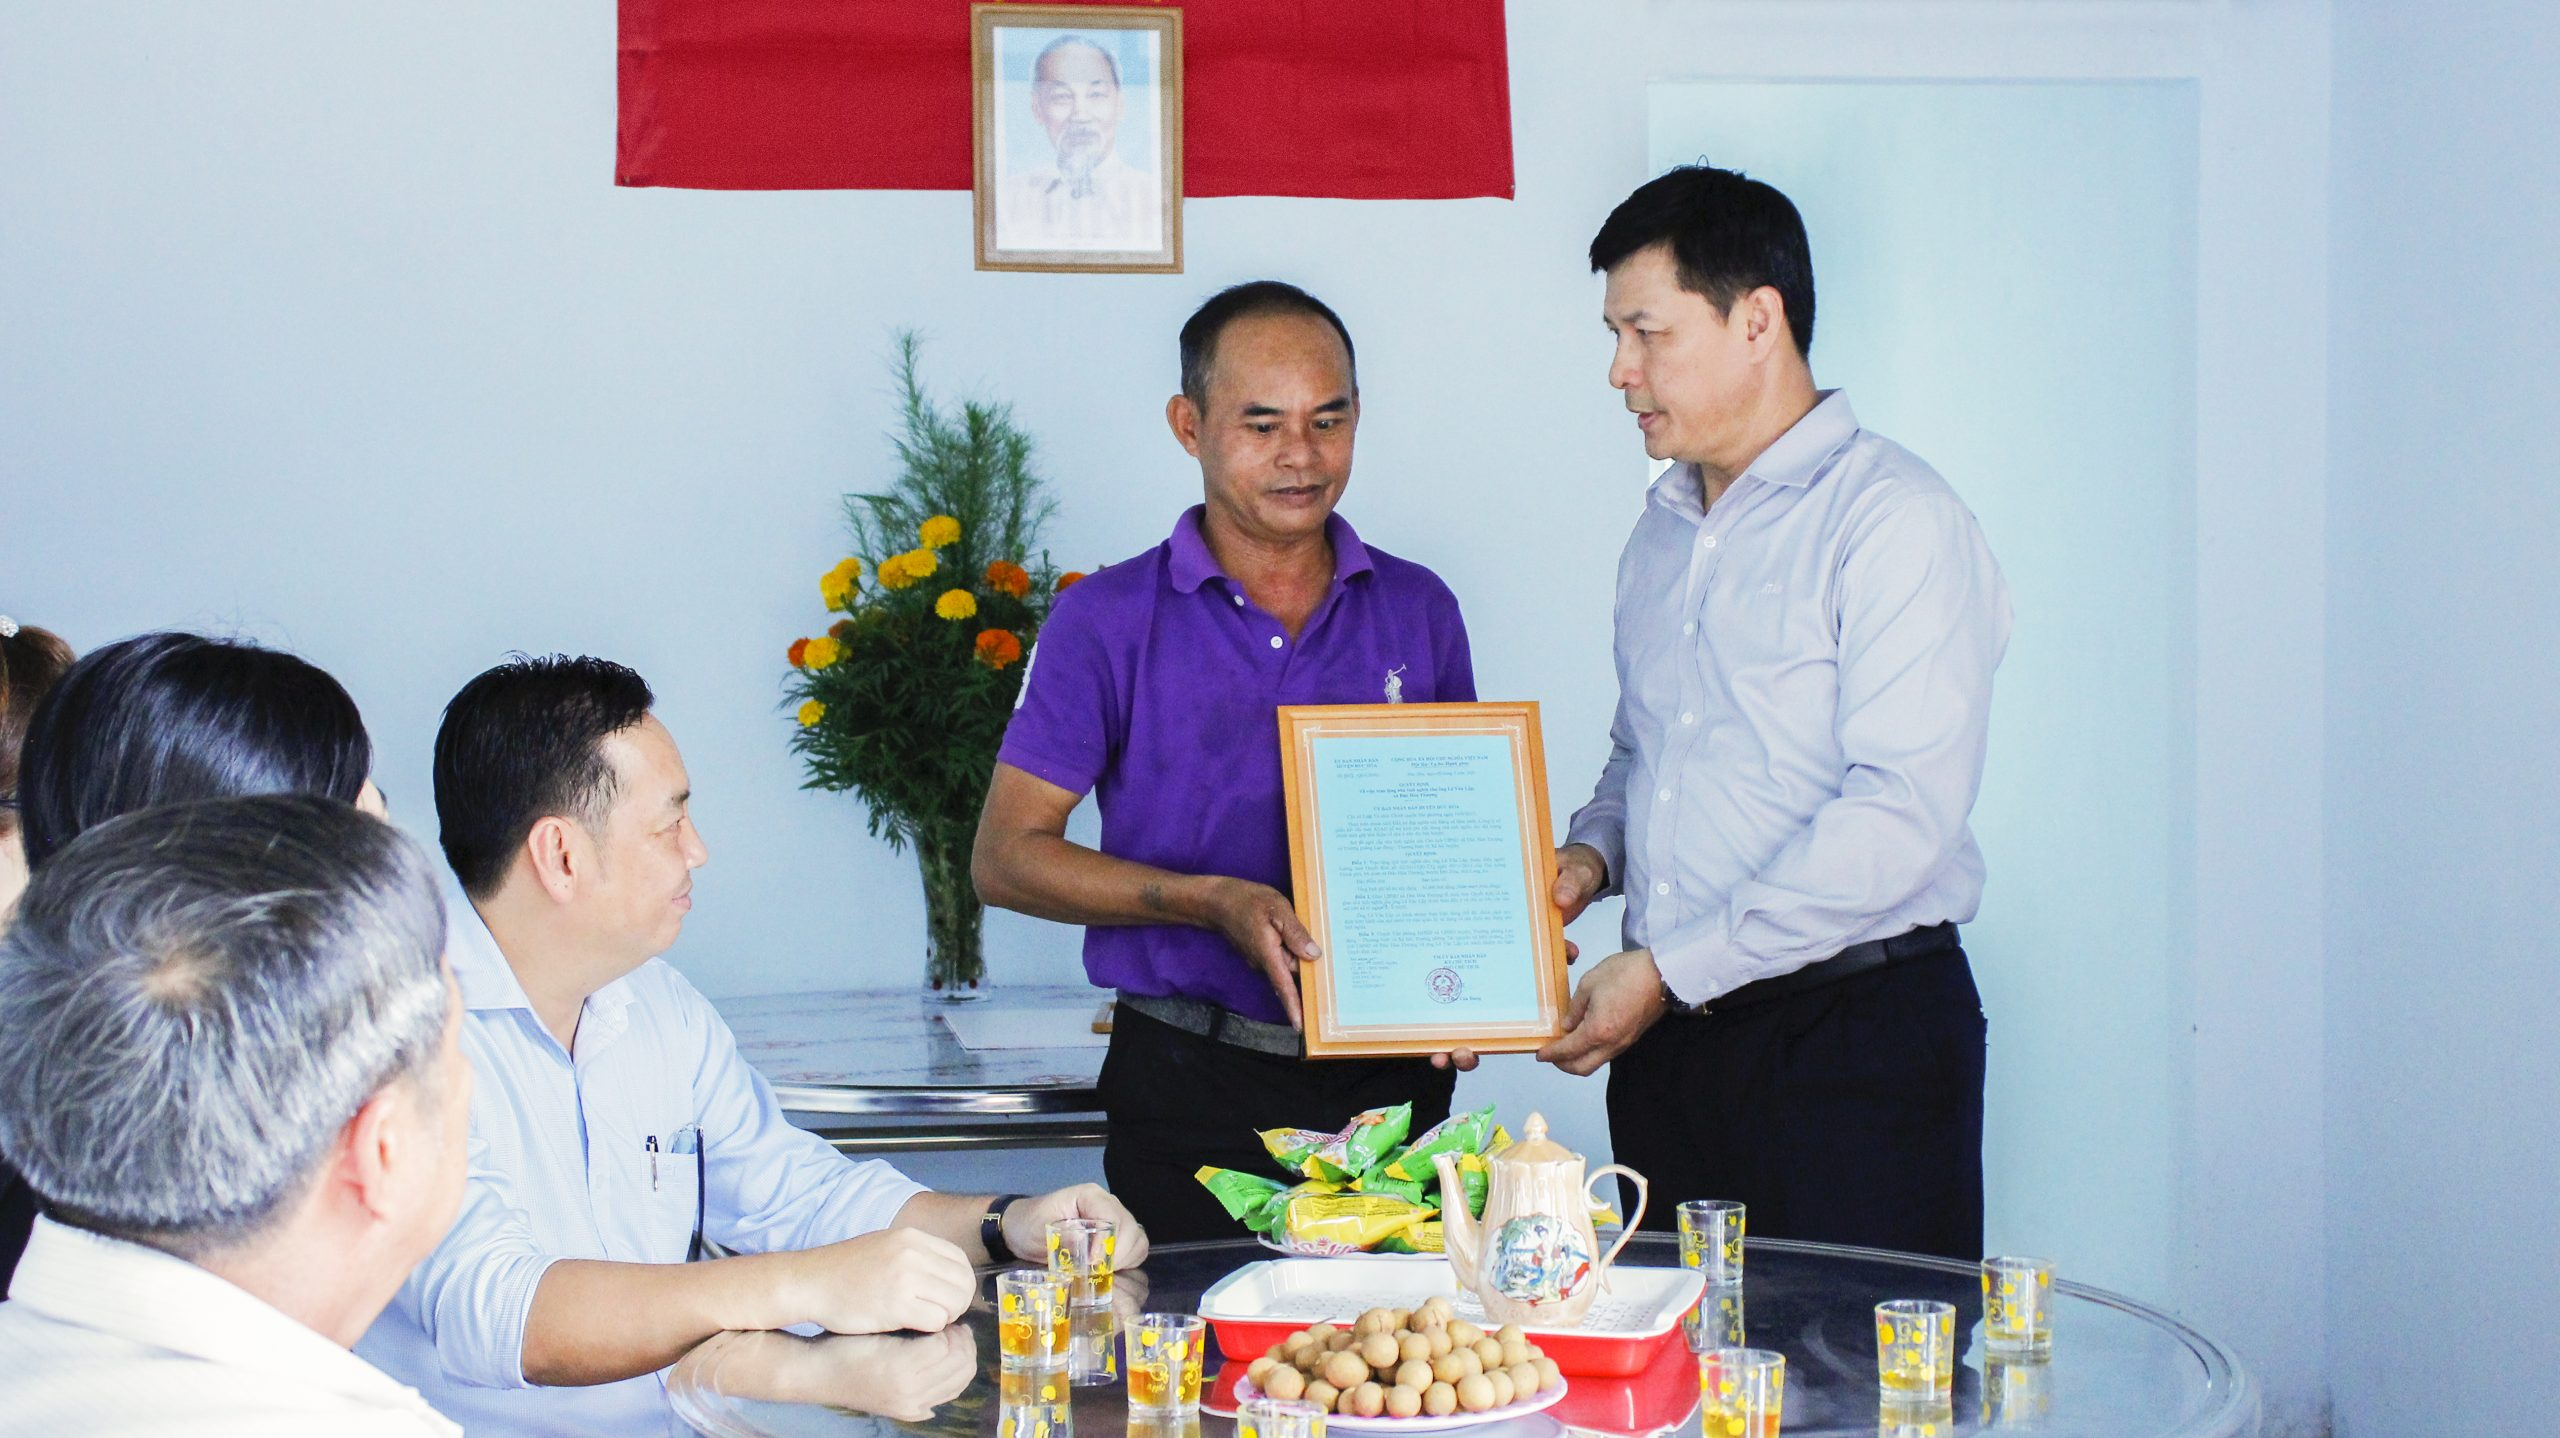 ATAD presented houses of gratitude in Duc Hoa district, Long An province 3